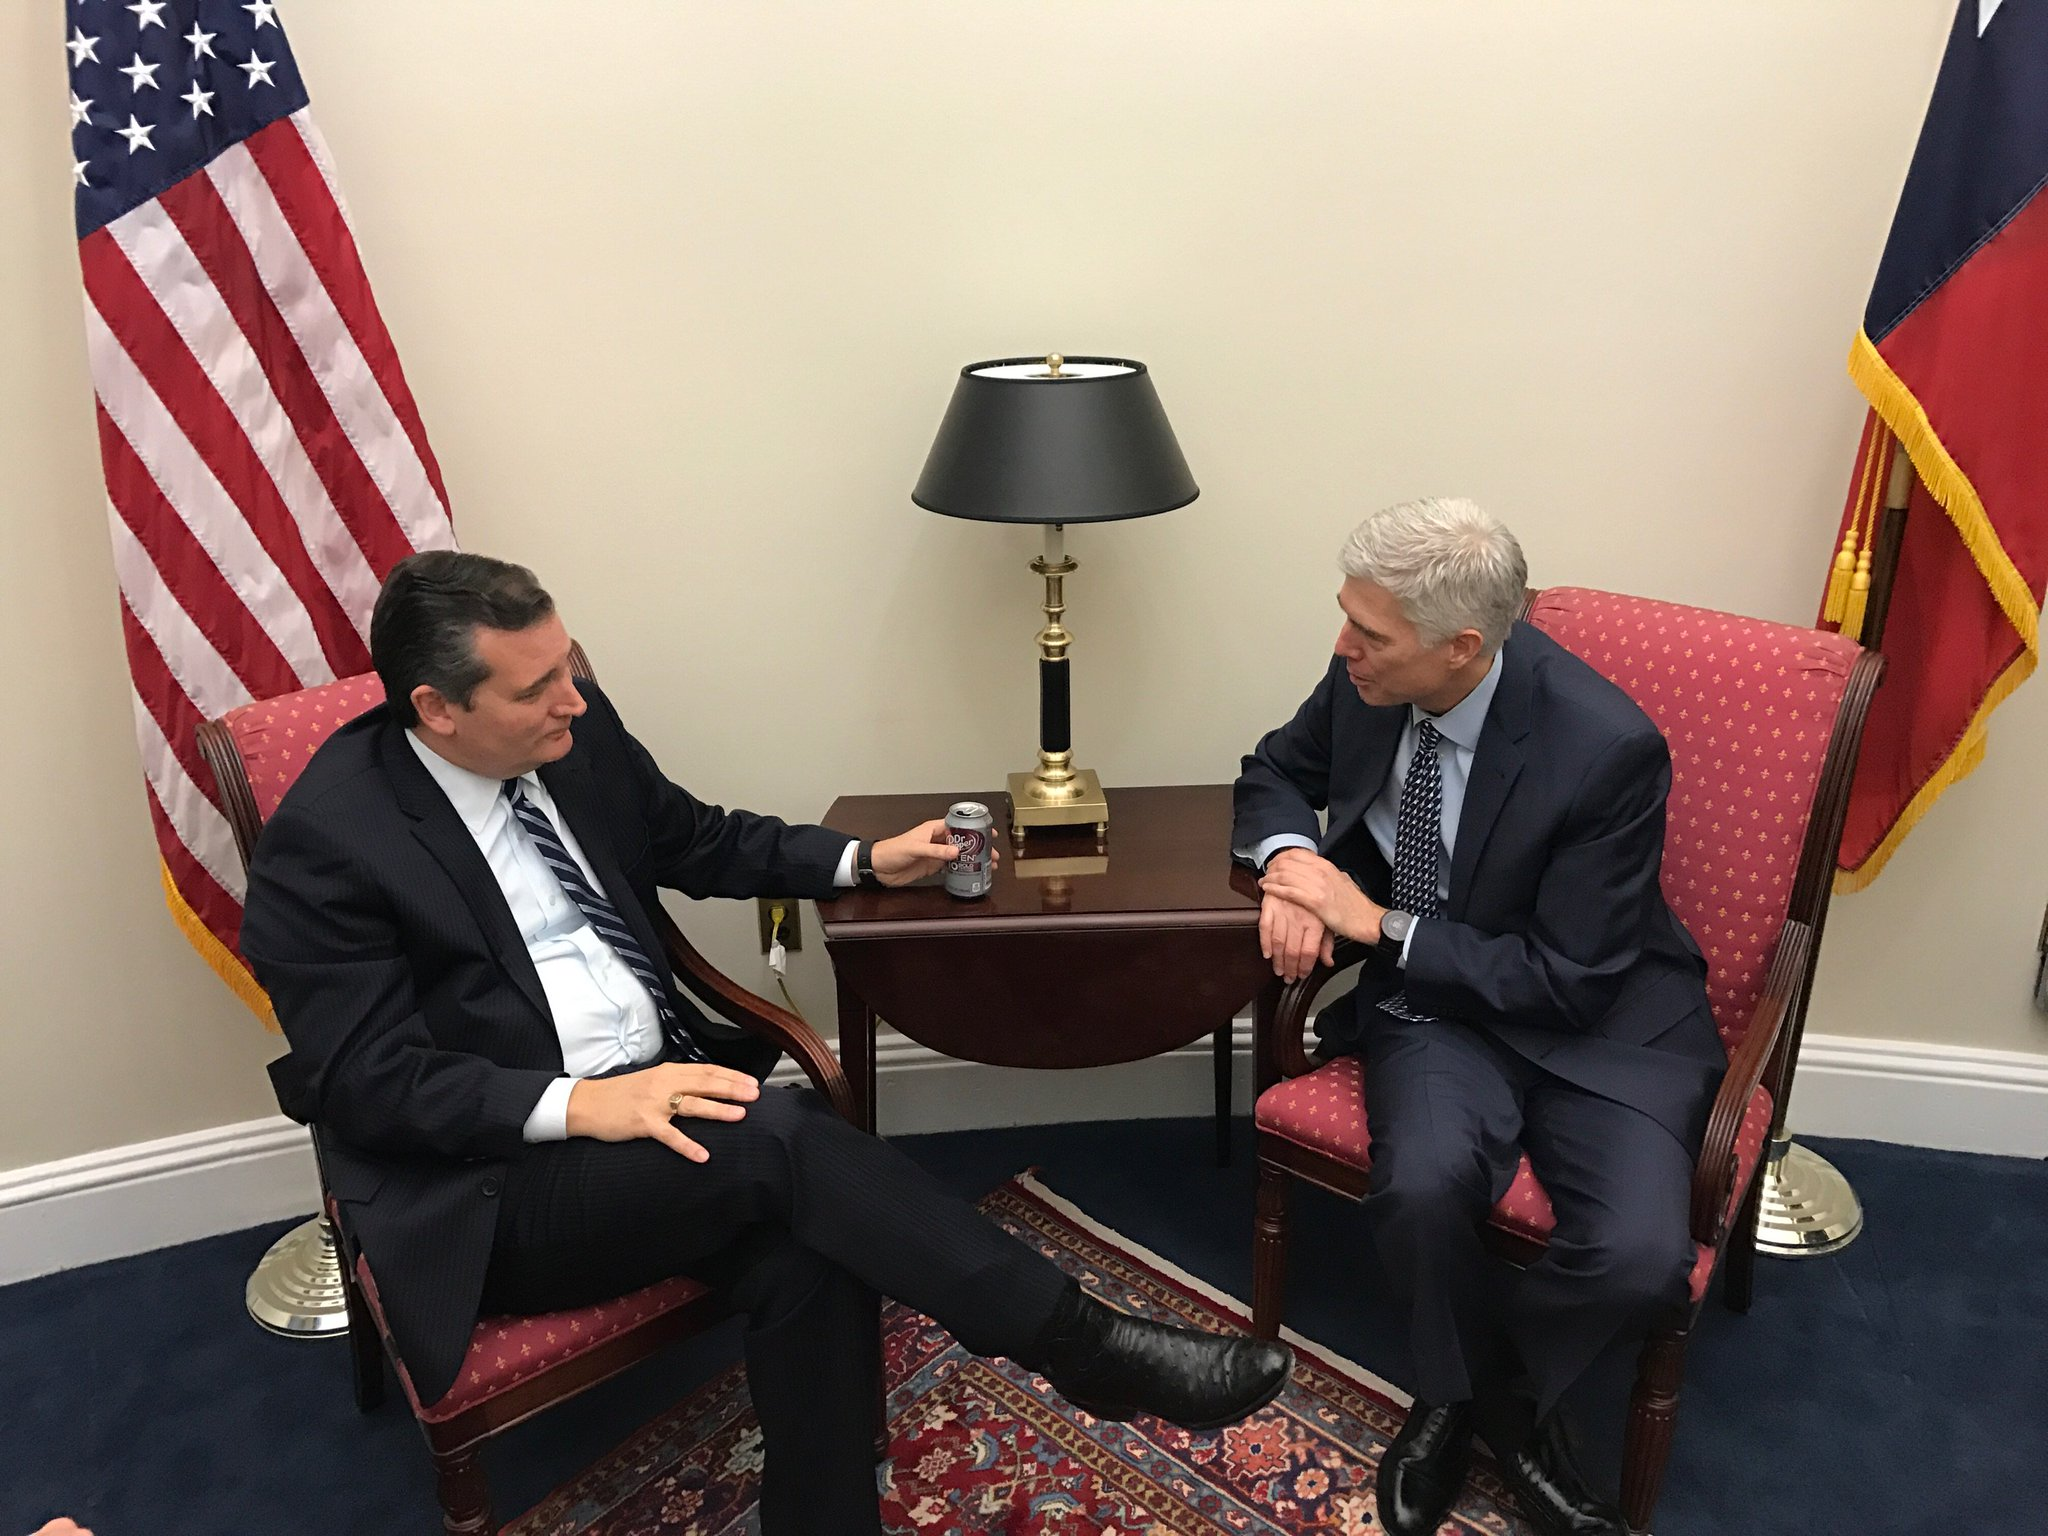 MT @SenTedCruz: Judge Gorsuch, an impressive jurist who follows Constitution. https://t.co/7aFbXmdSX7 https://t.co/STpJwtWQ9x #SCOTUS #PJNET